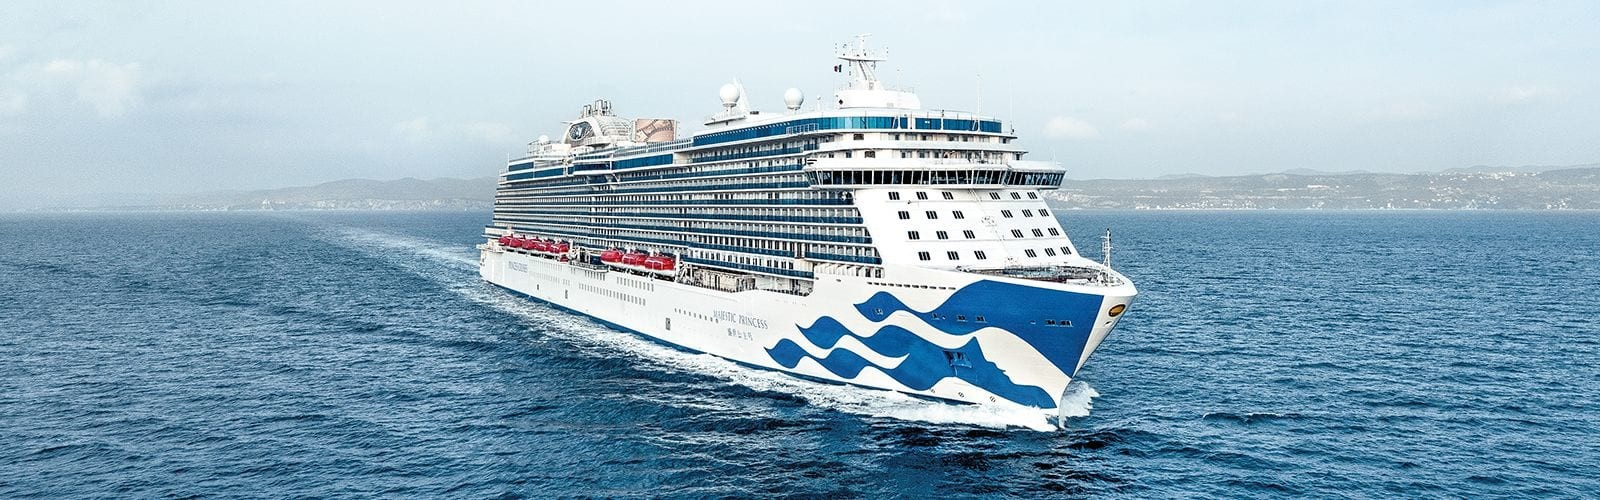 Лайнер Majestic Princess в водах Австралии